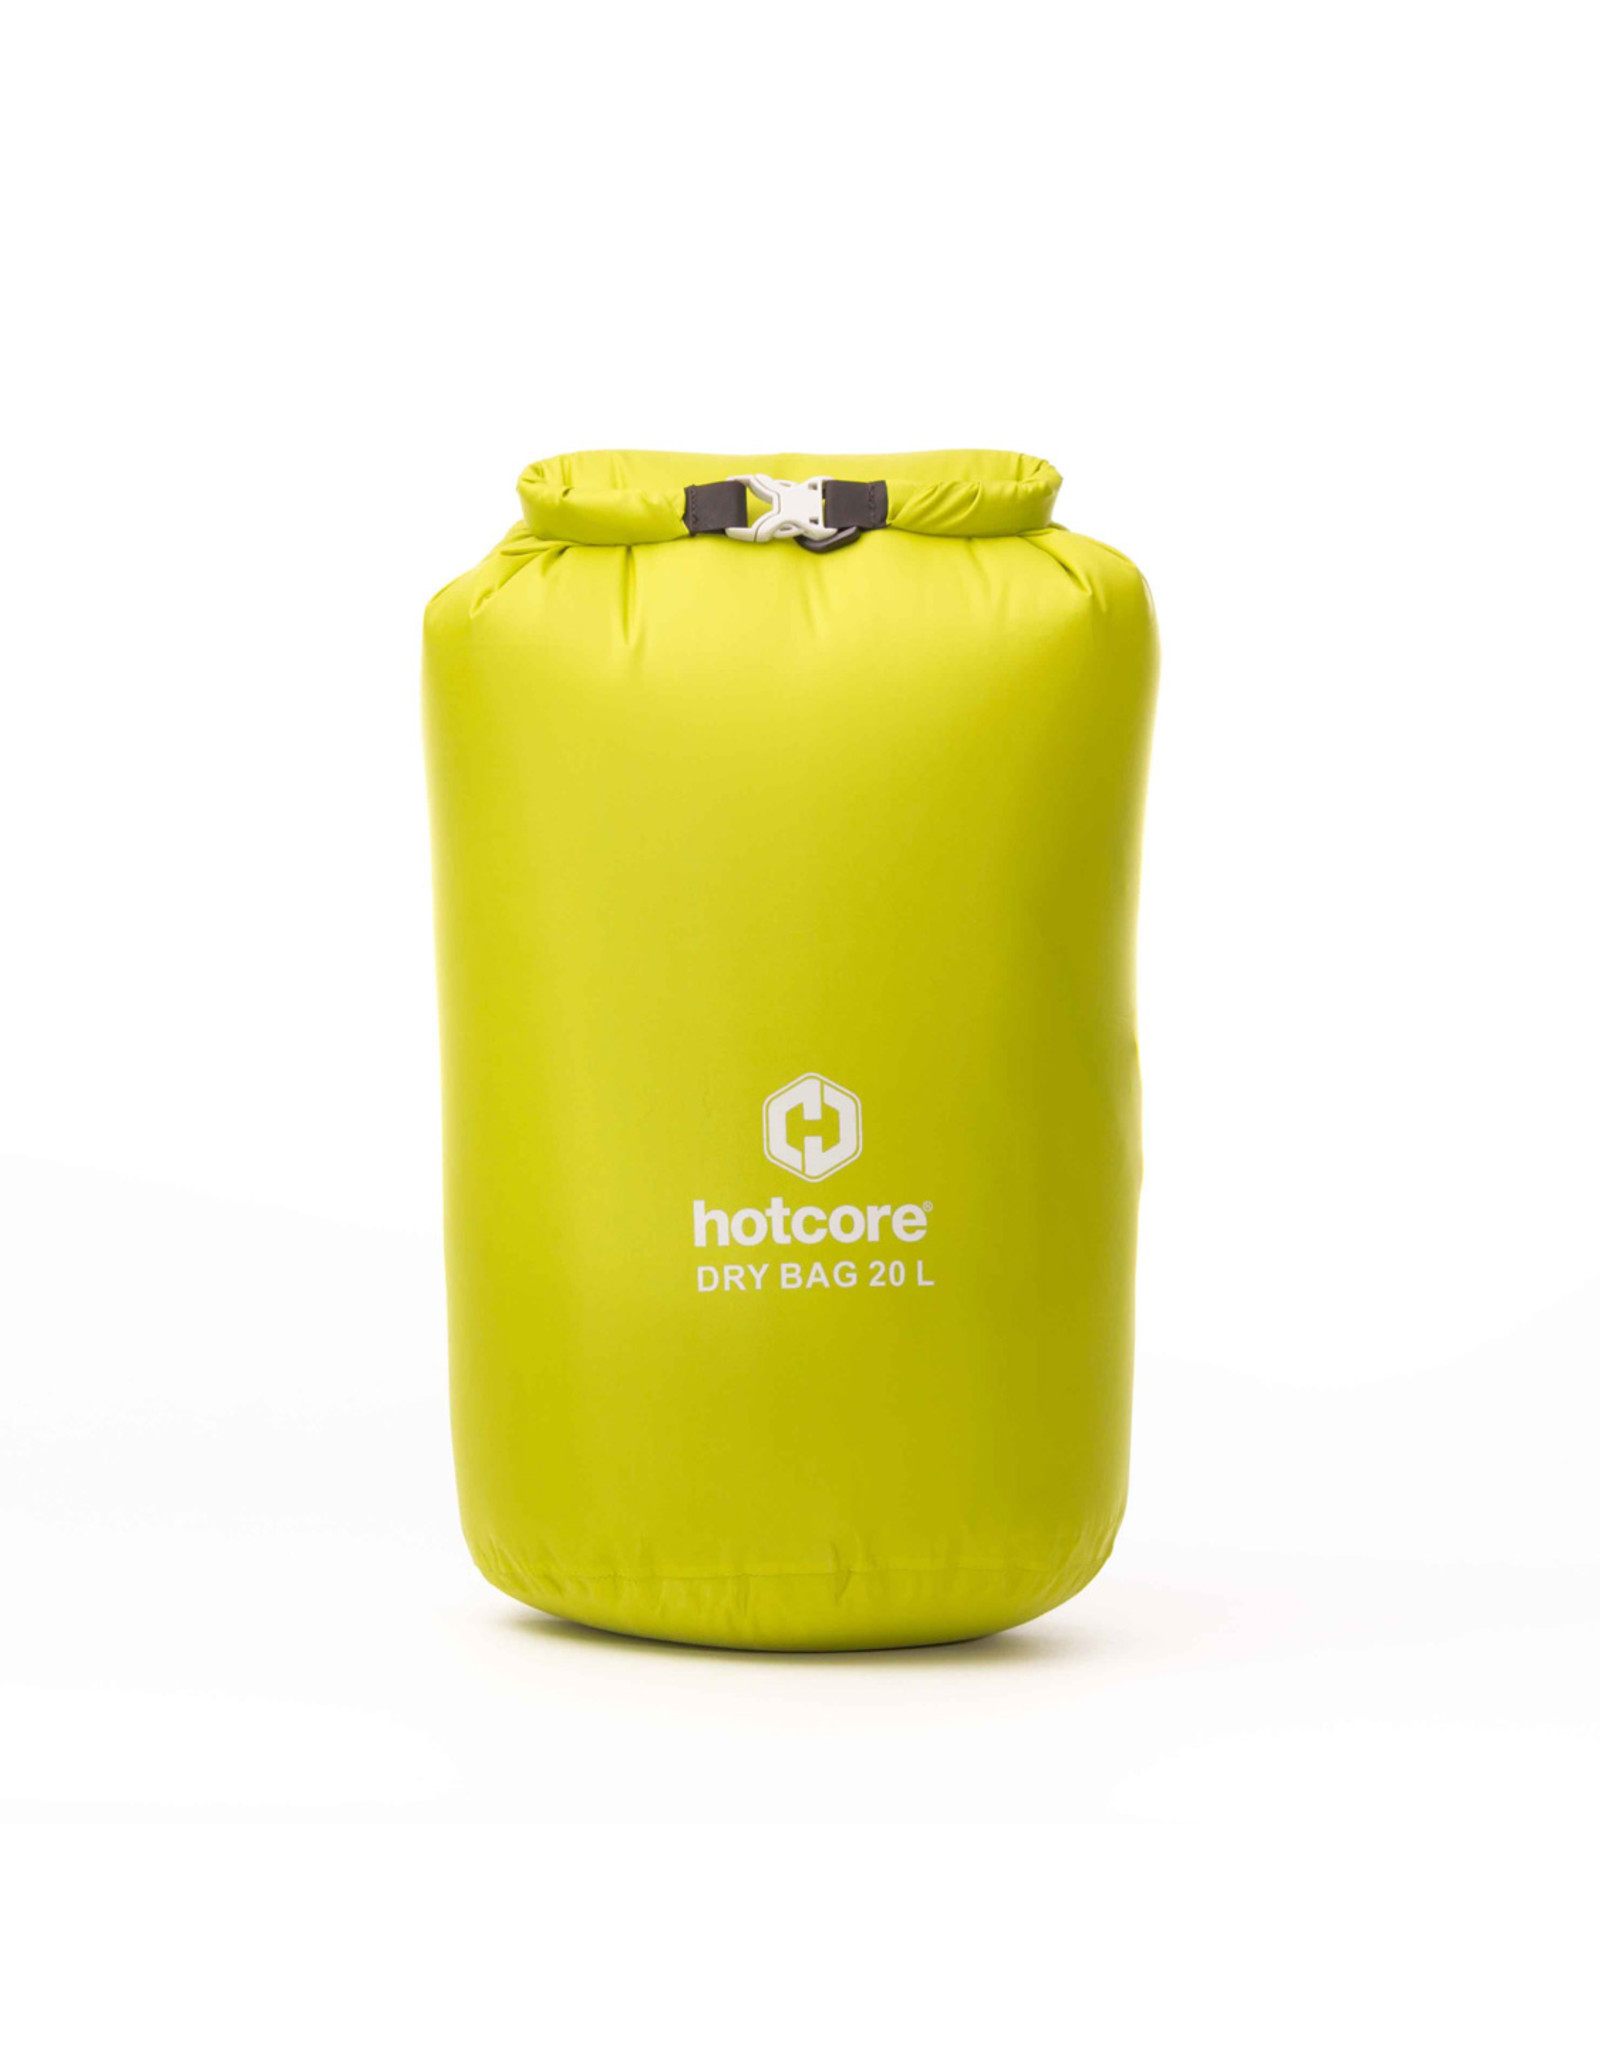 HOTCORE GUARDIAN DRY BAG-20L